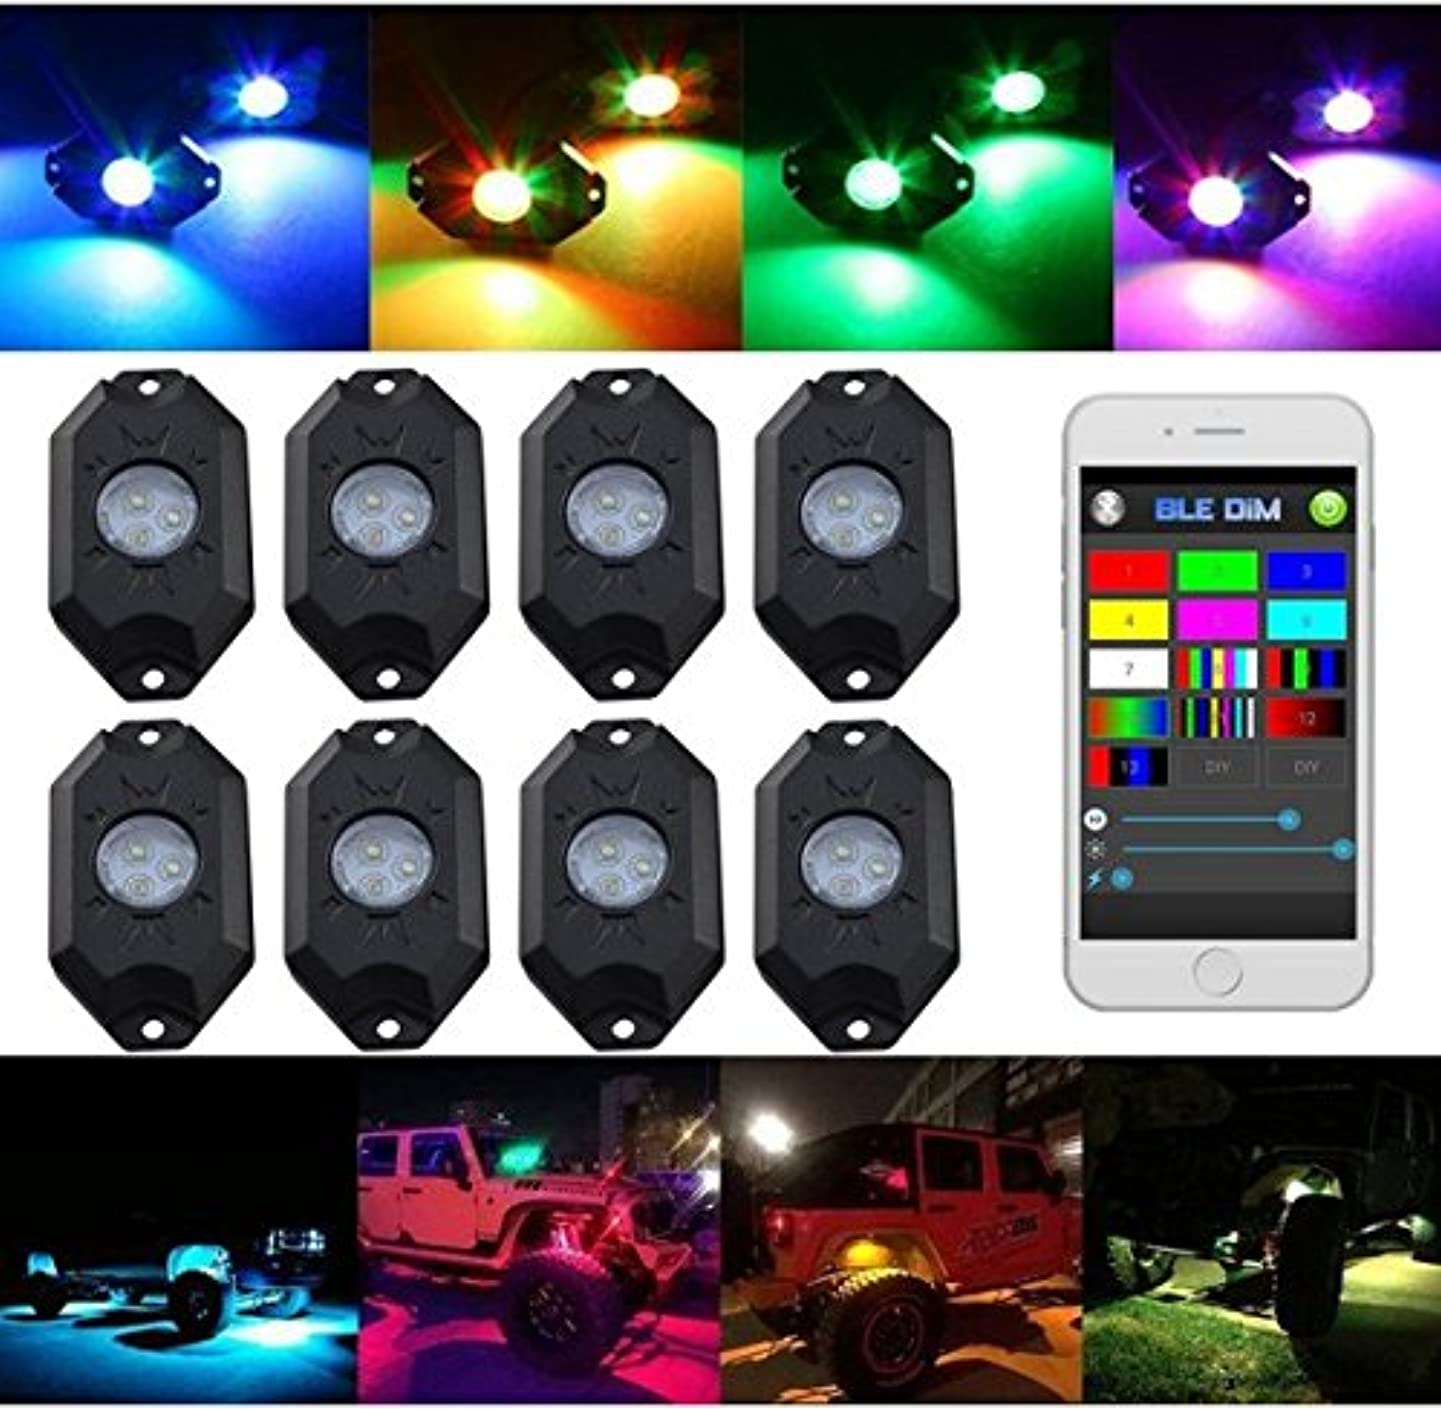 RGB LED Rock Lights Kits Multi-Color Cell Phone Control Bluetooth Controller Waterproof Cars Truck SUV Replacement fit for Jeep Vehicle Boat Interior with Timing Music Mode (8pods Neon Lights)